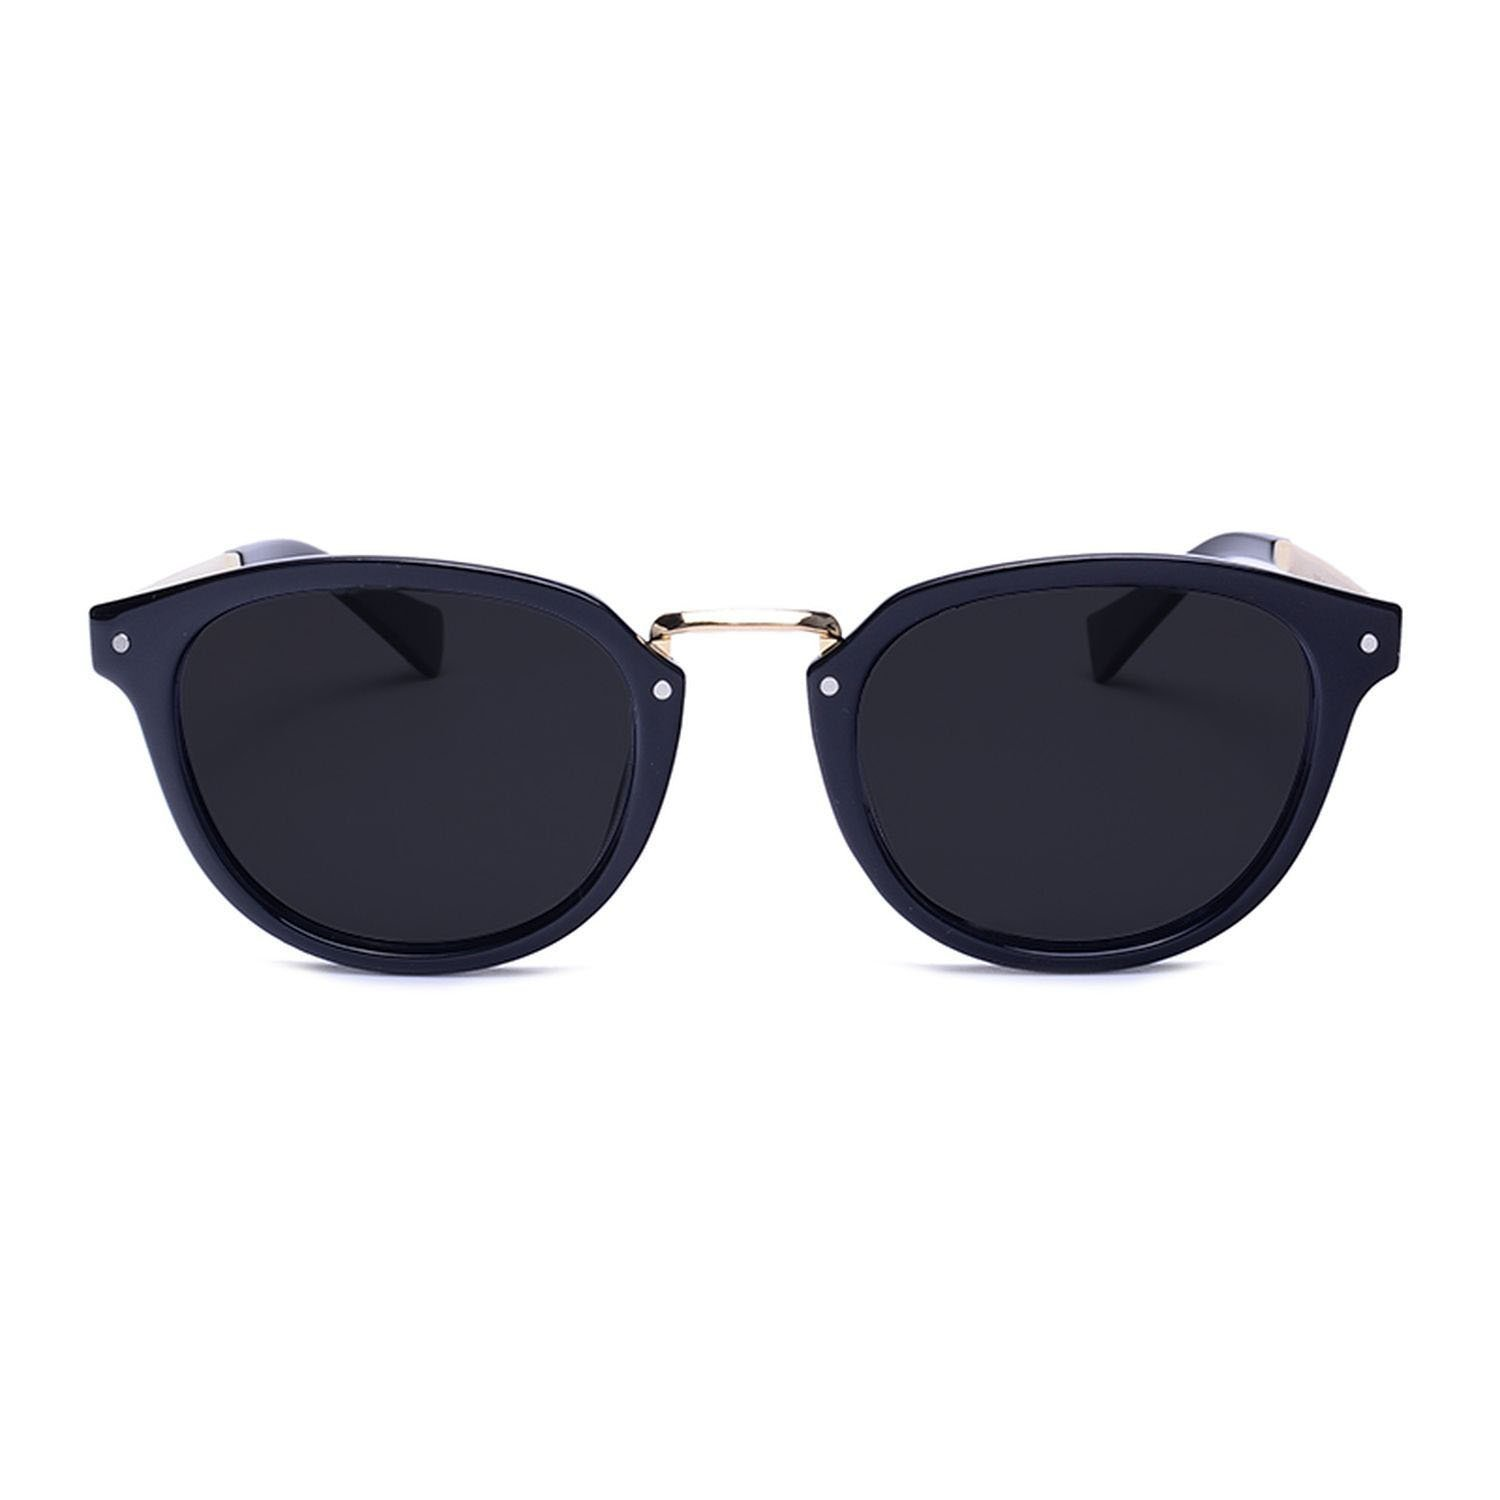 Amazon.com: Unisex Luxury vintage cat eye Sunglasses 2018 Polarized Women Designer UV400 Mirror With Box,gray: Clothing